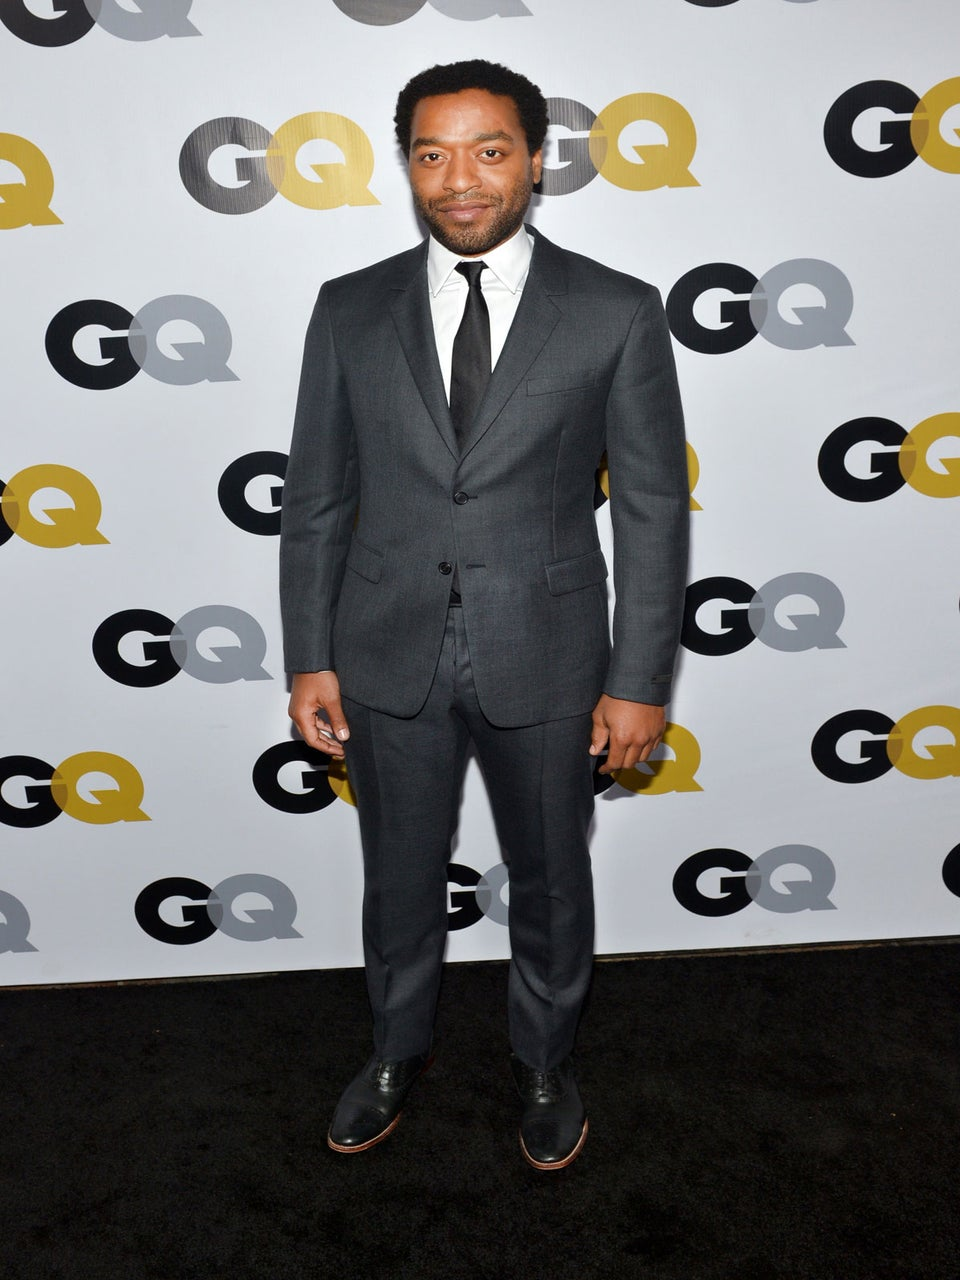 Chiwetel Ejiofor, Forest Whitaker, Oprah Winfrey & More Earn SAG Nominations